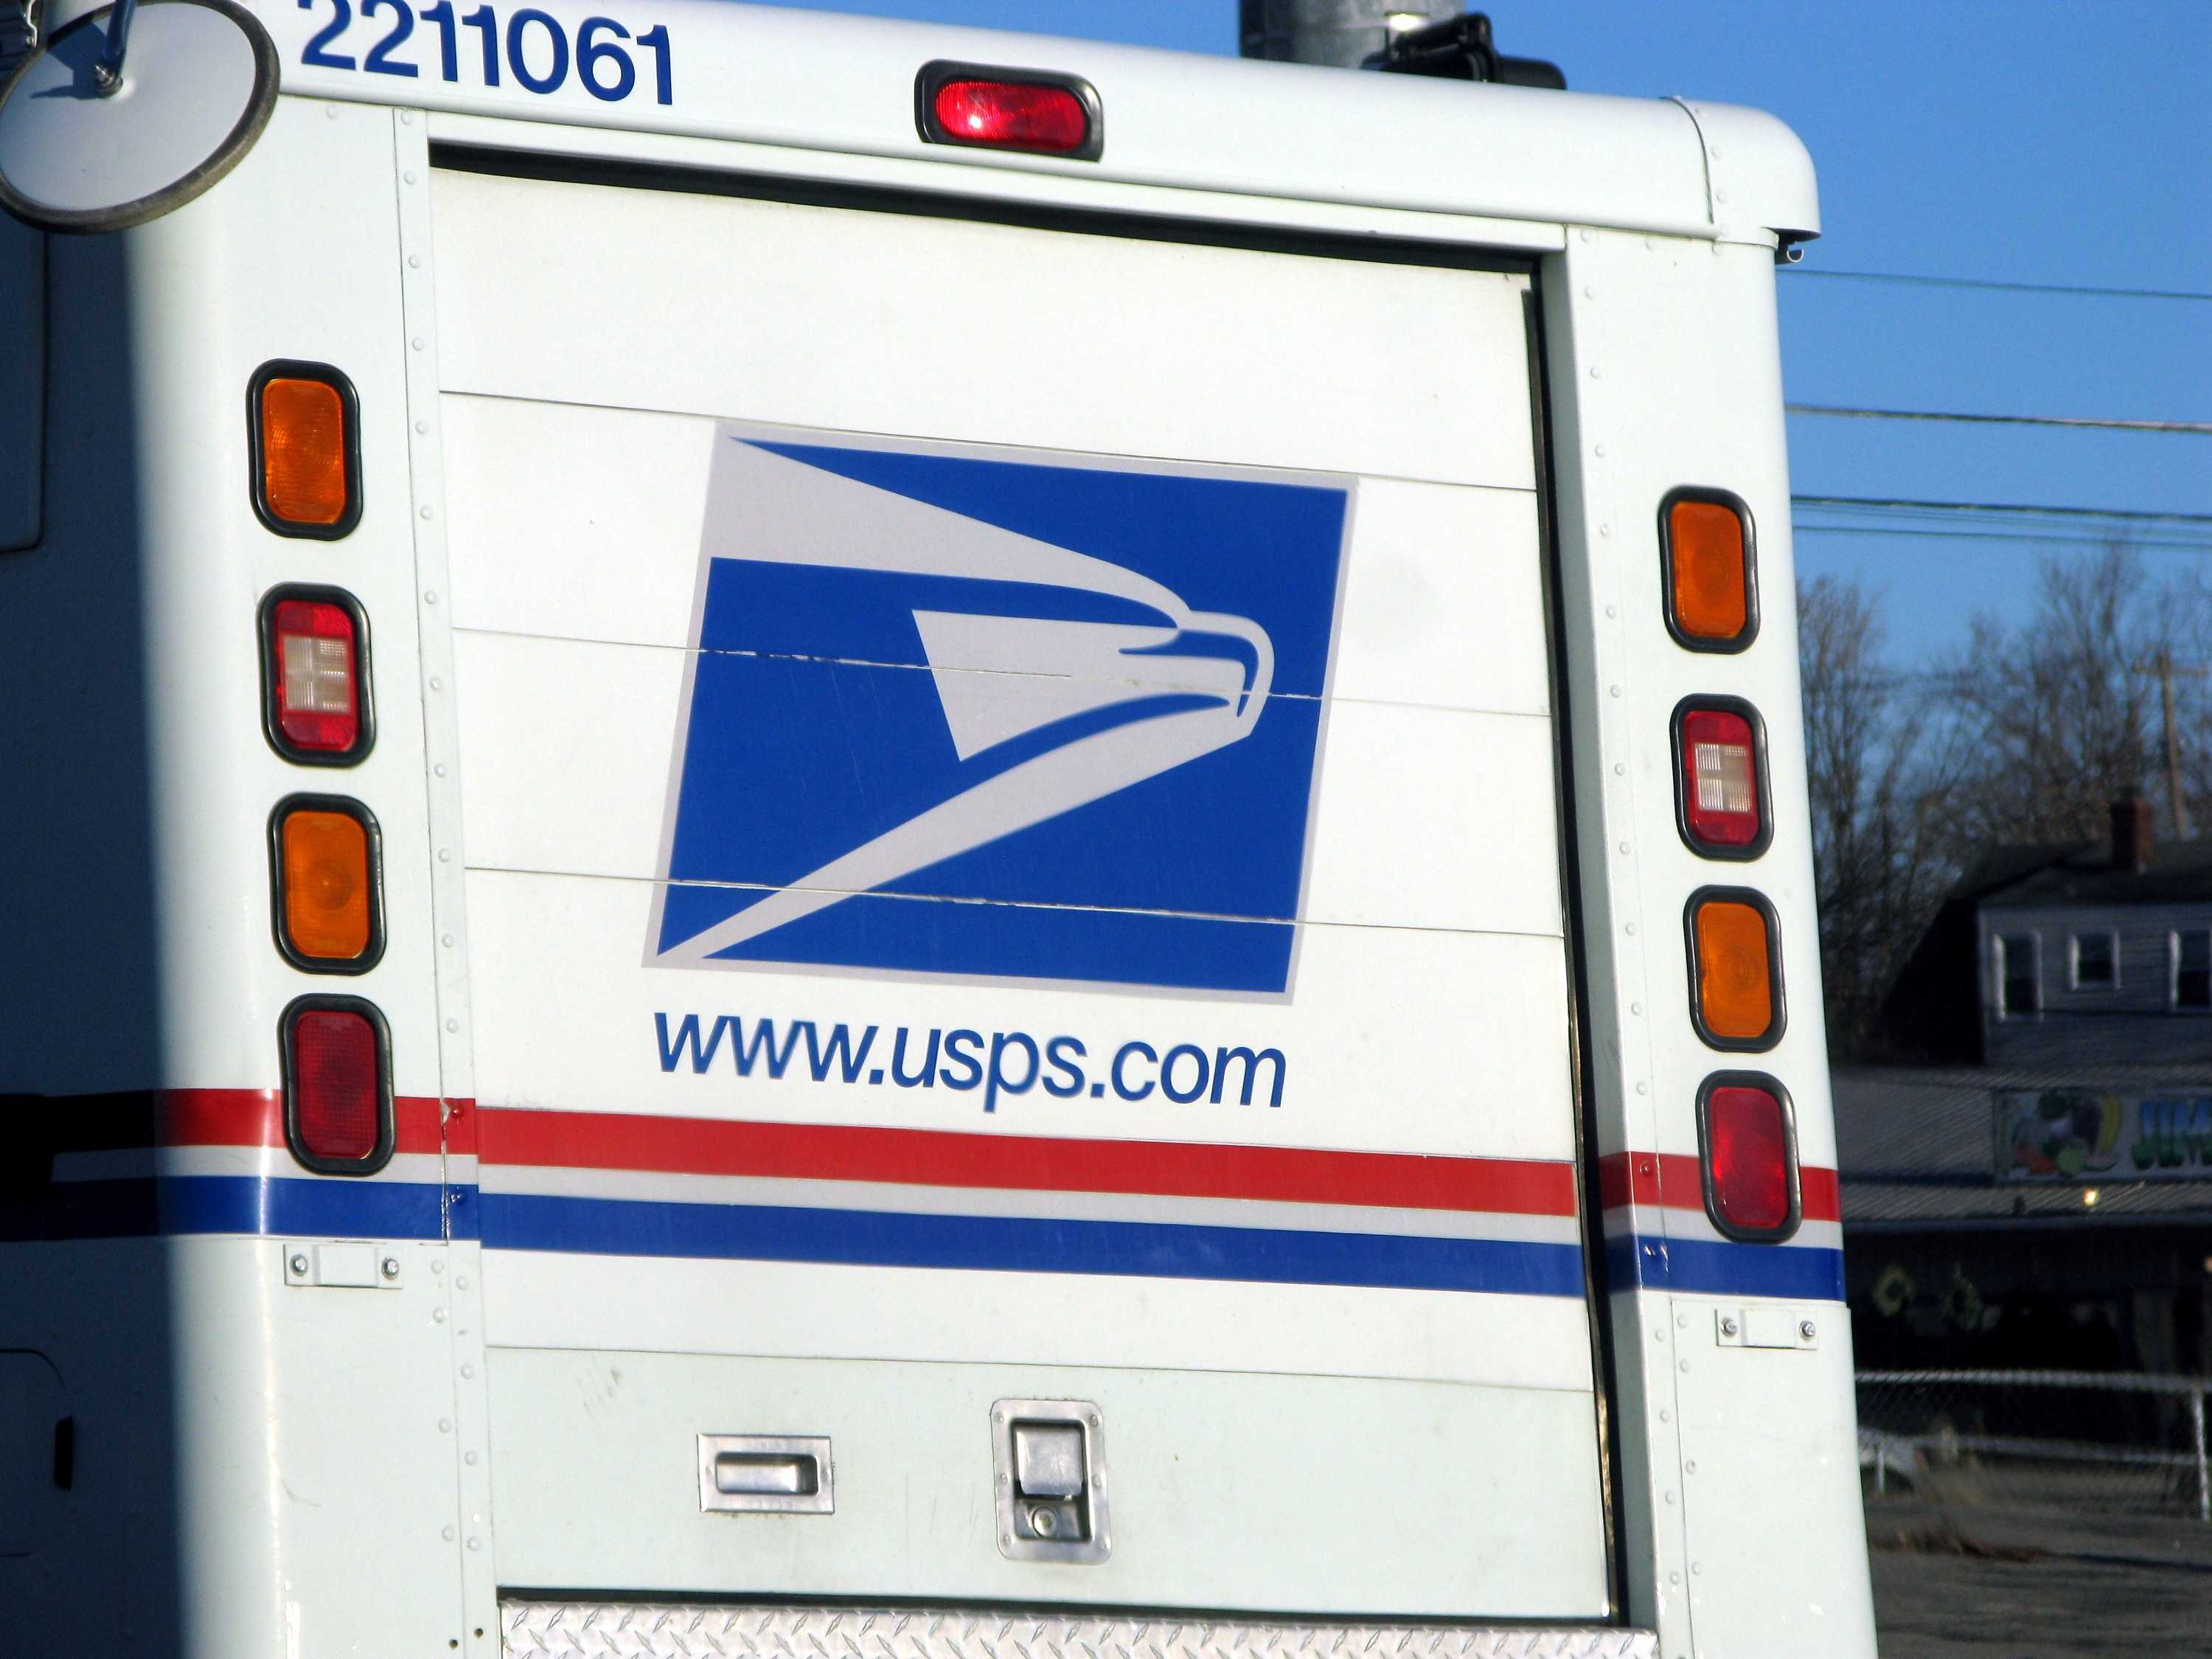 USPS: Saturday deadline to mail greeting cards, packages to ensure ...